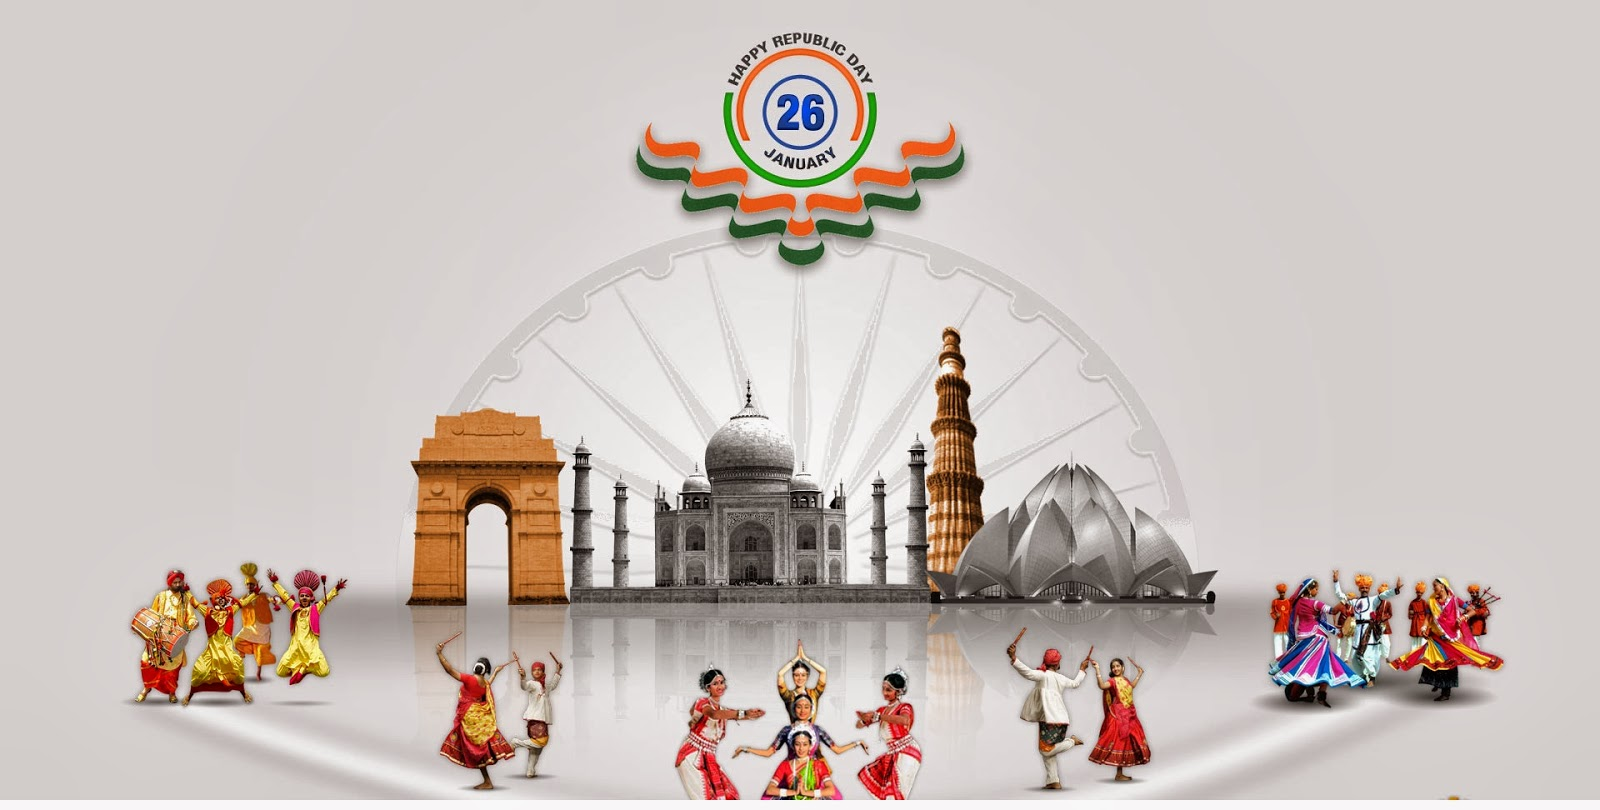 NEW Republic Day Wallpapers And Greeting For Facebook Cover Whatsapp Dp Profile Pictures 1